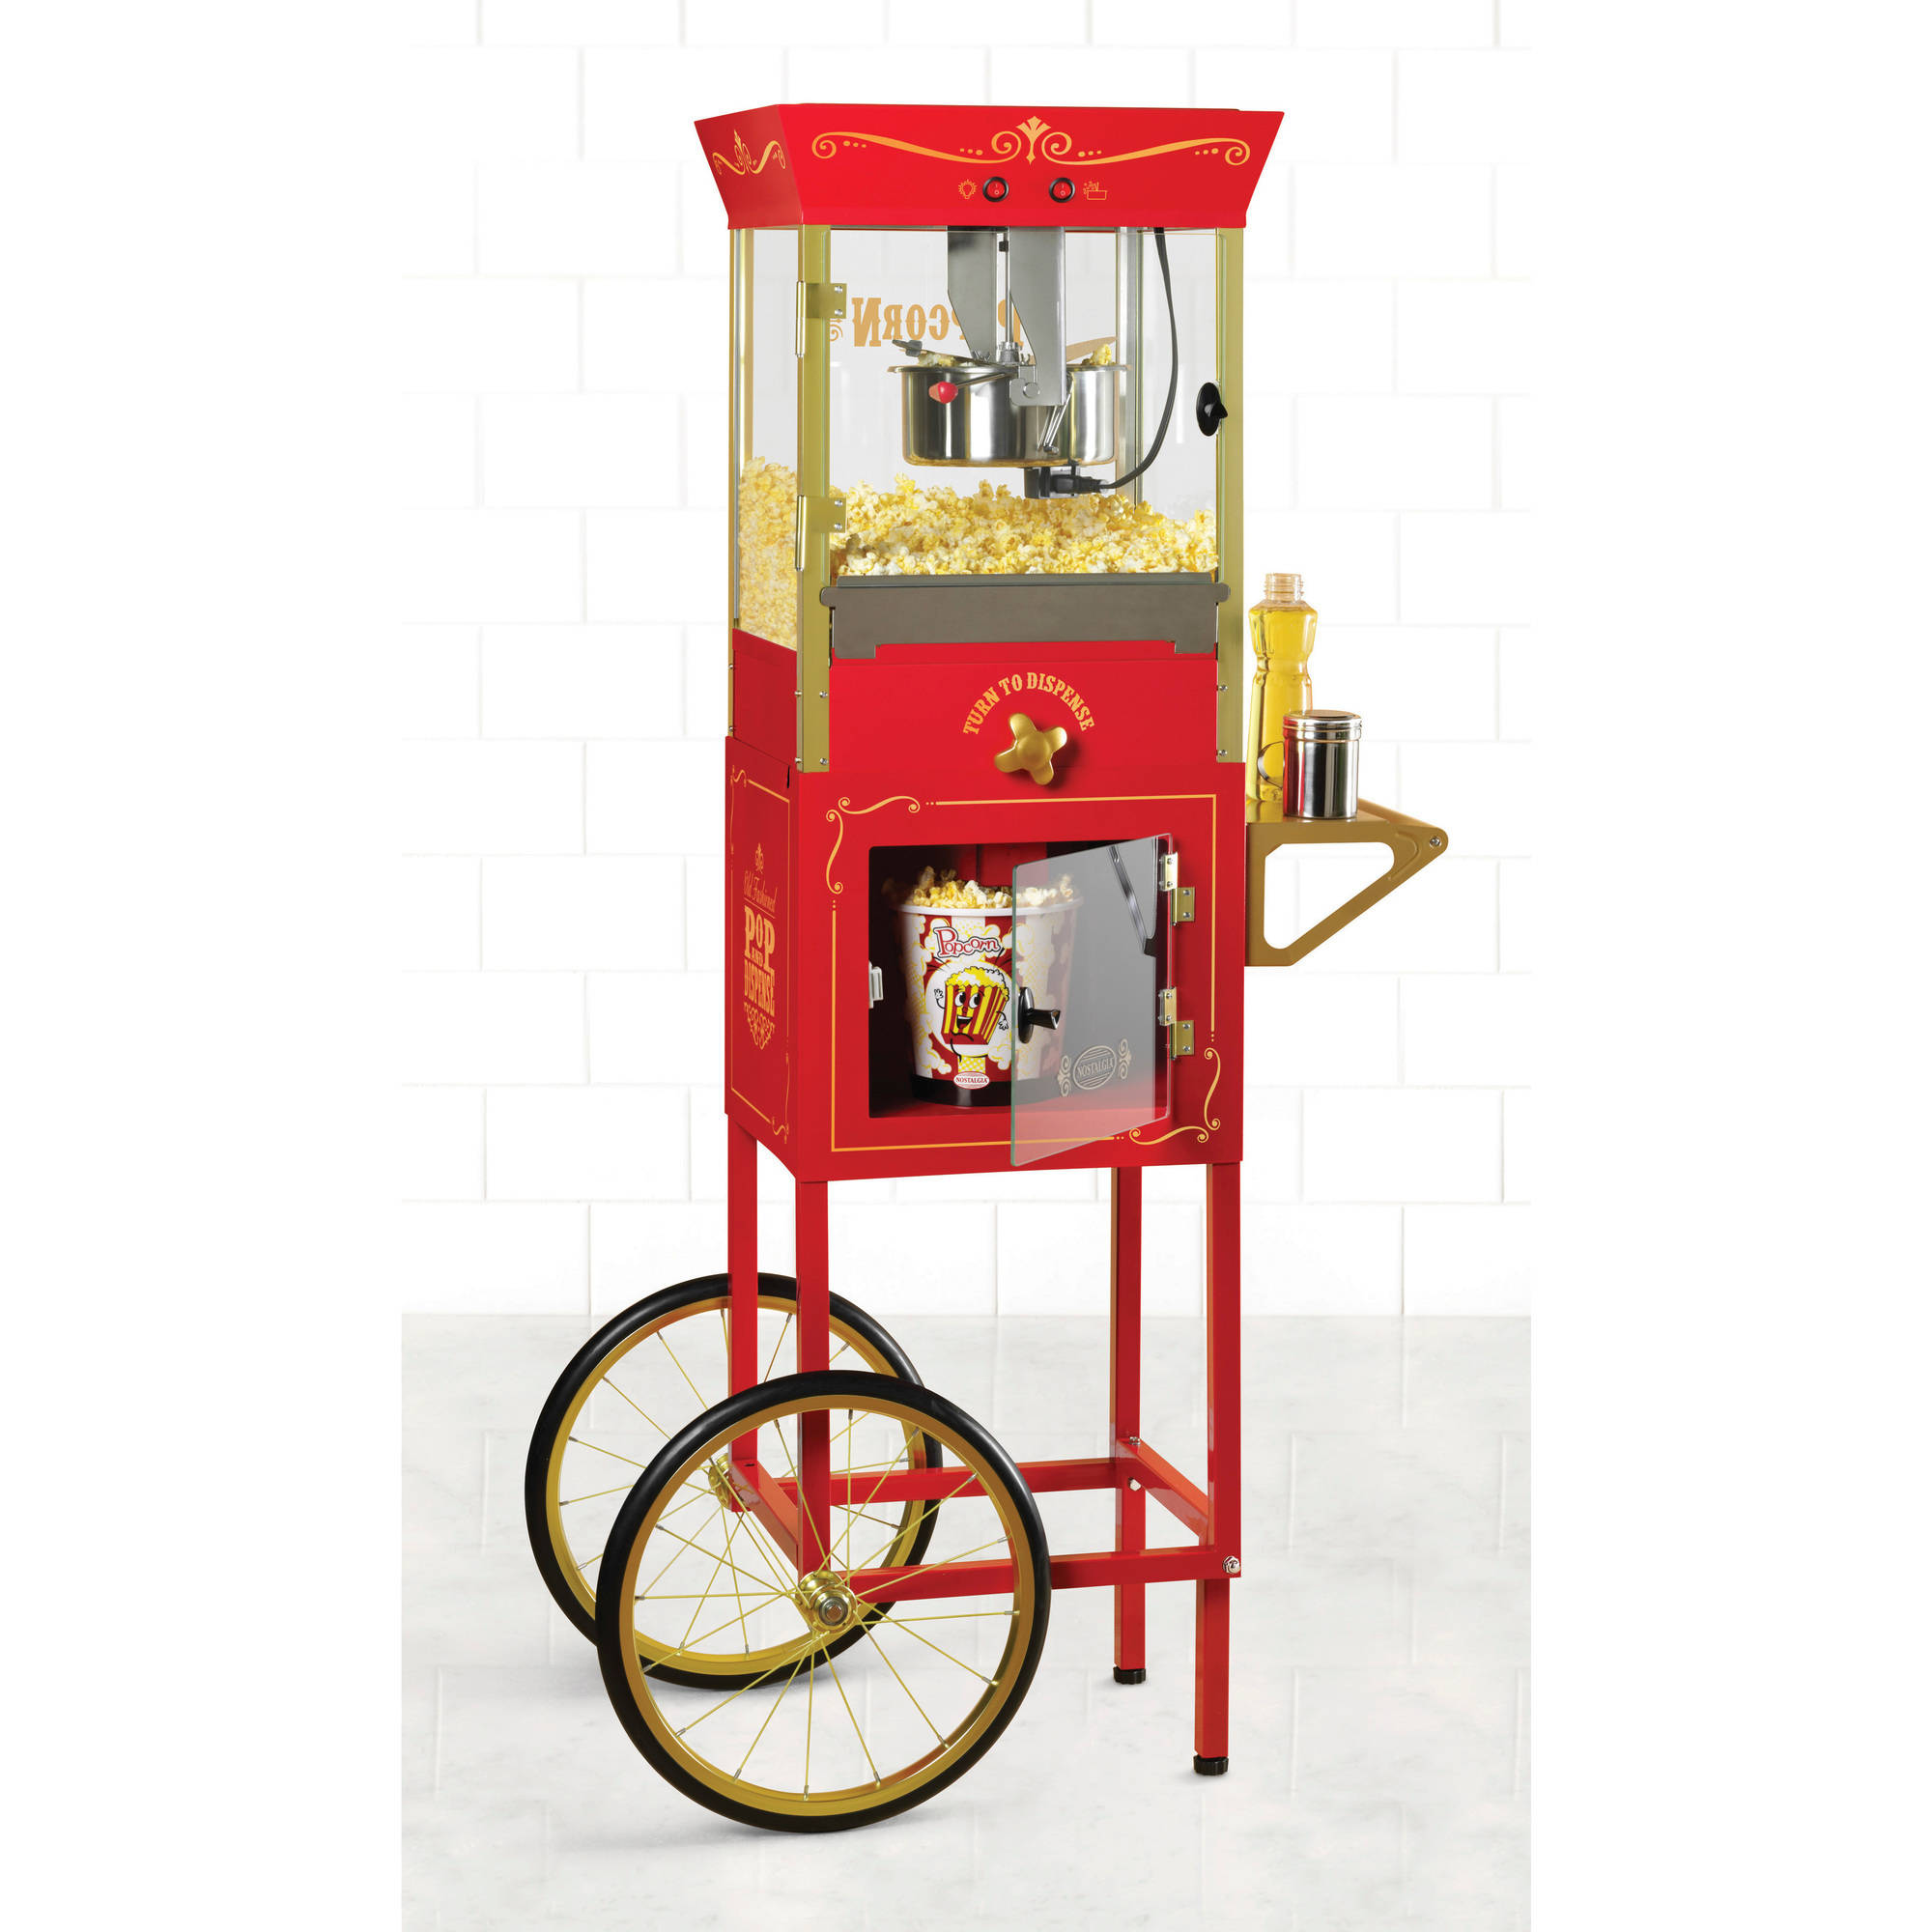 "Nostalgia Electrics 59"" Tall Vintage Collection 8-Ounce Kettle Commercial Dispensing Popcorn Cart, CCP810"